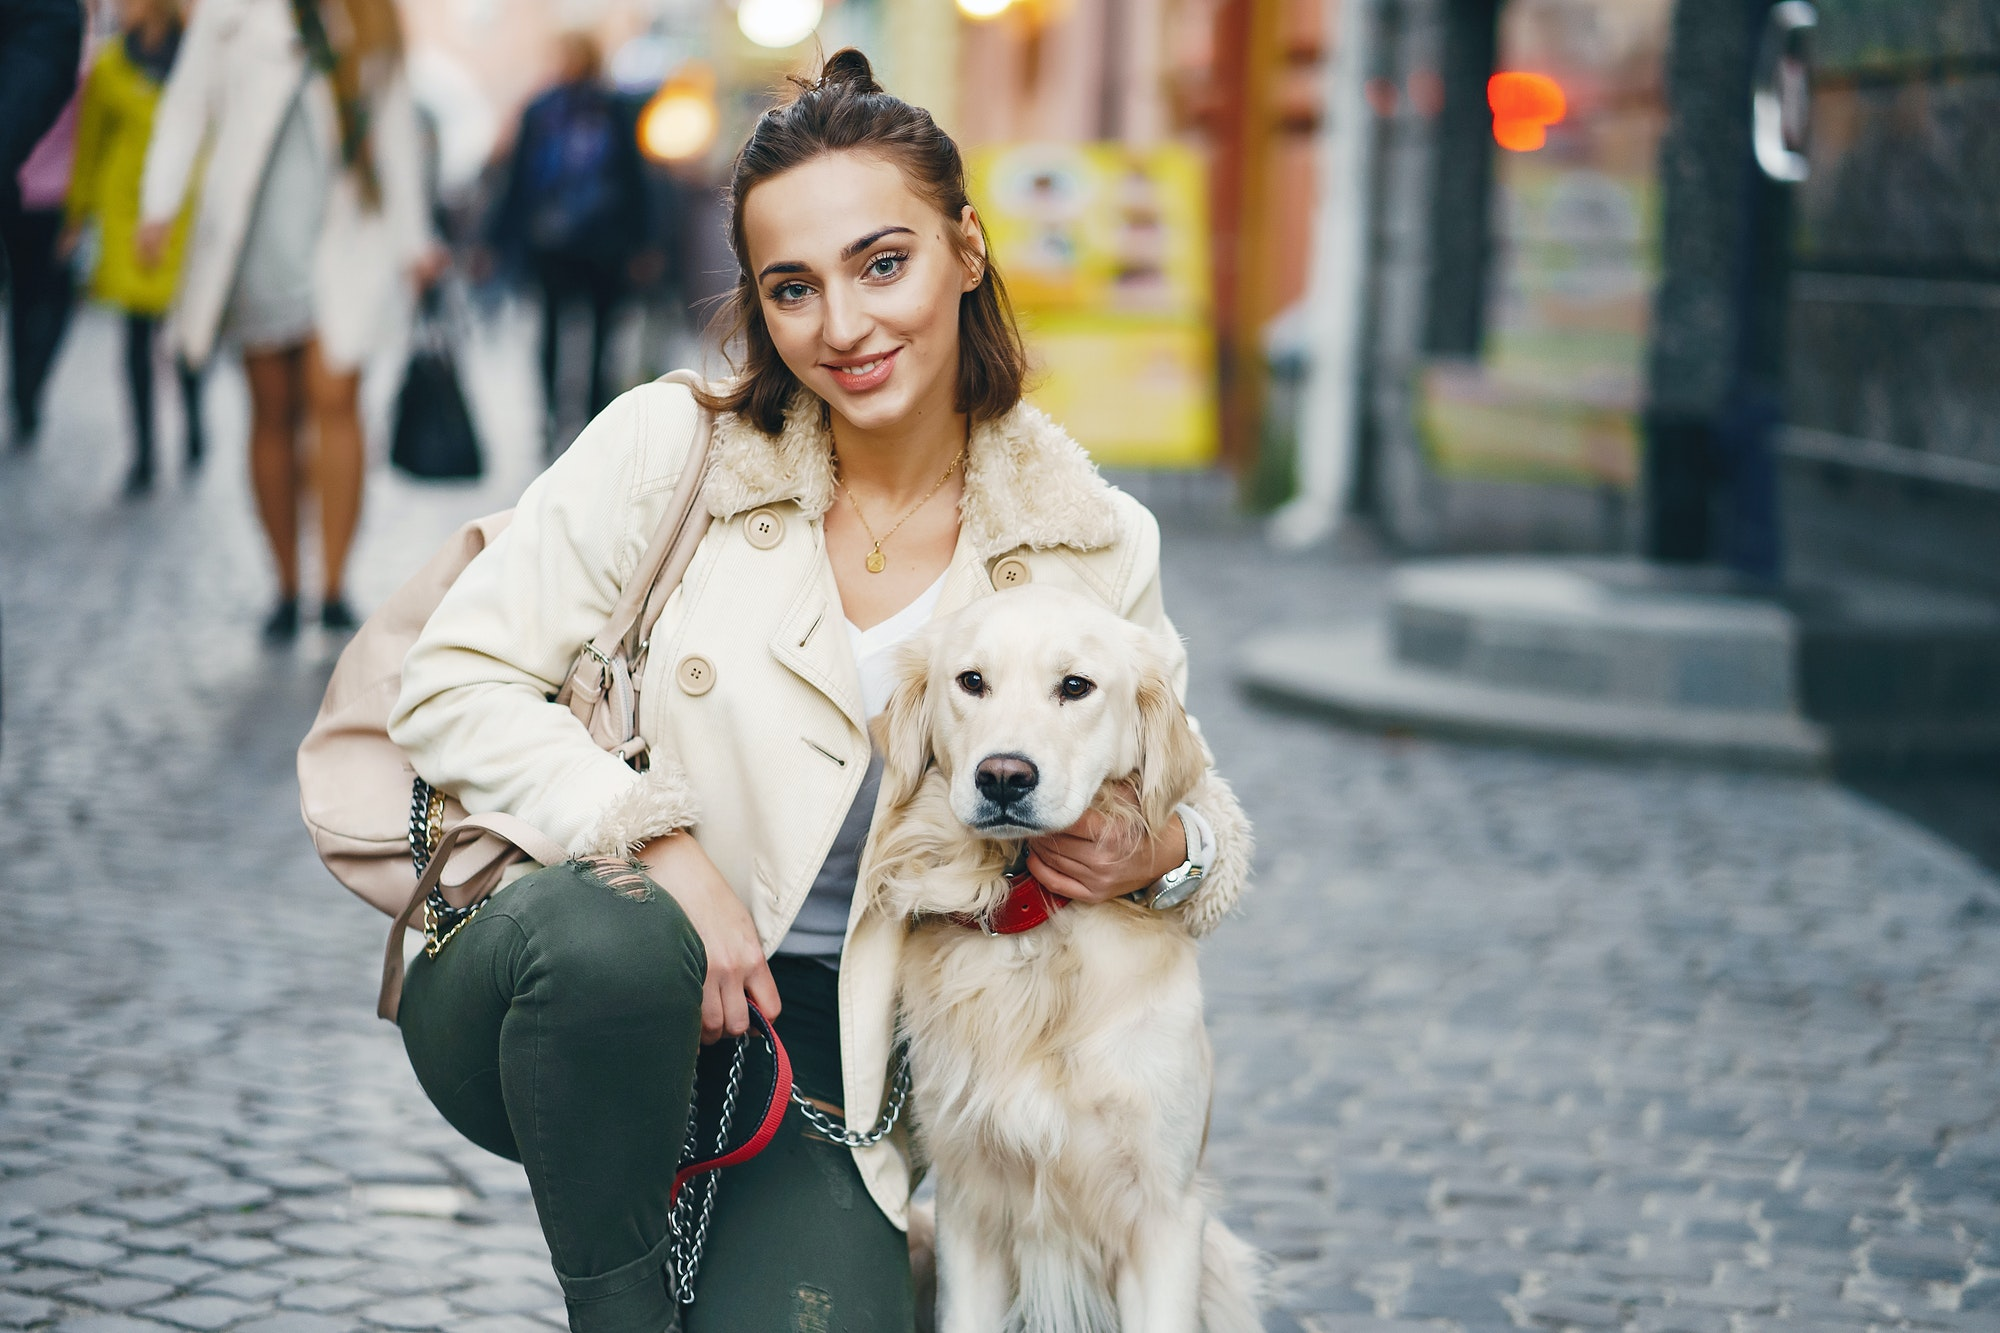 girl walking dog in the city